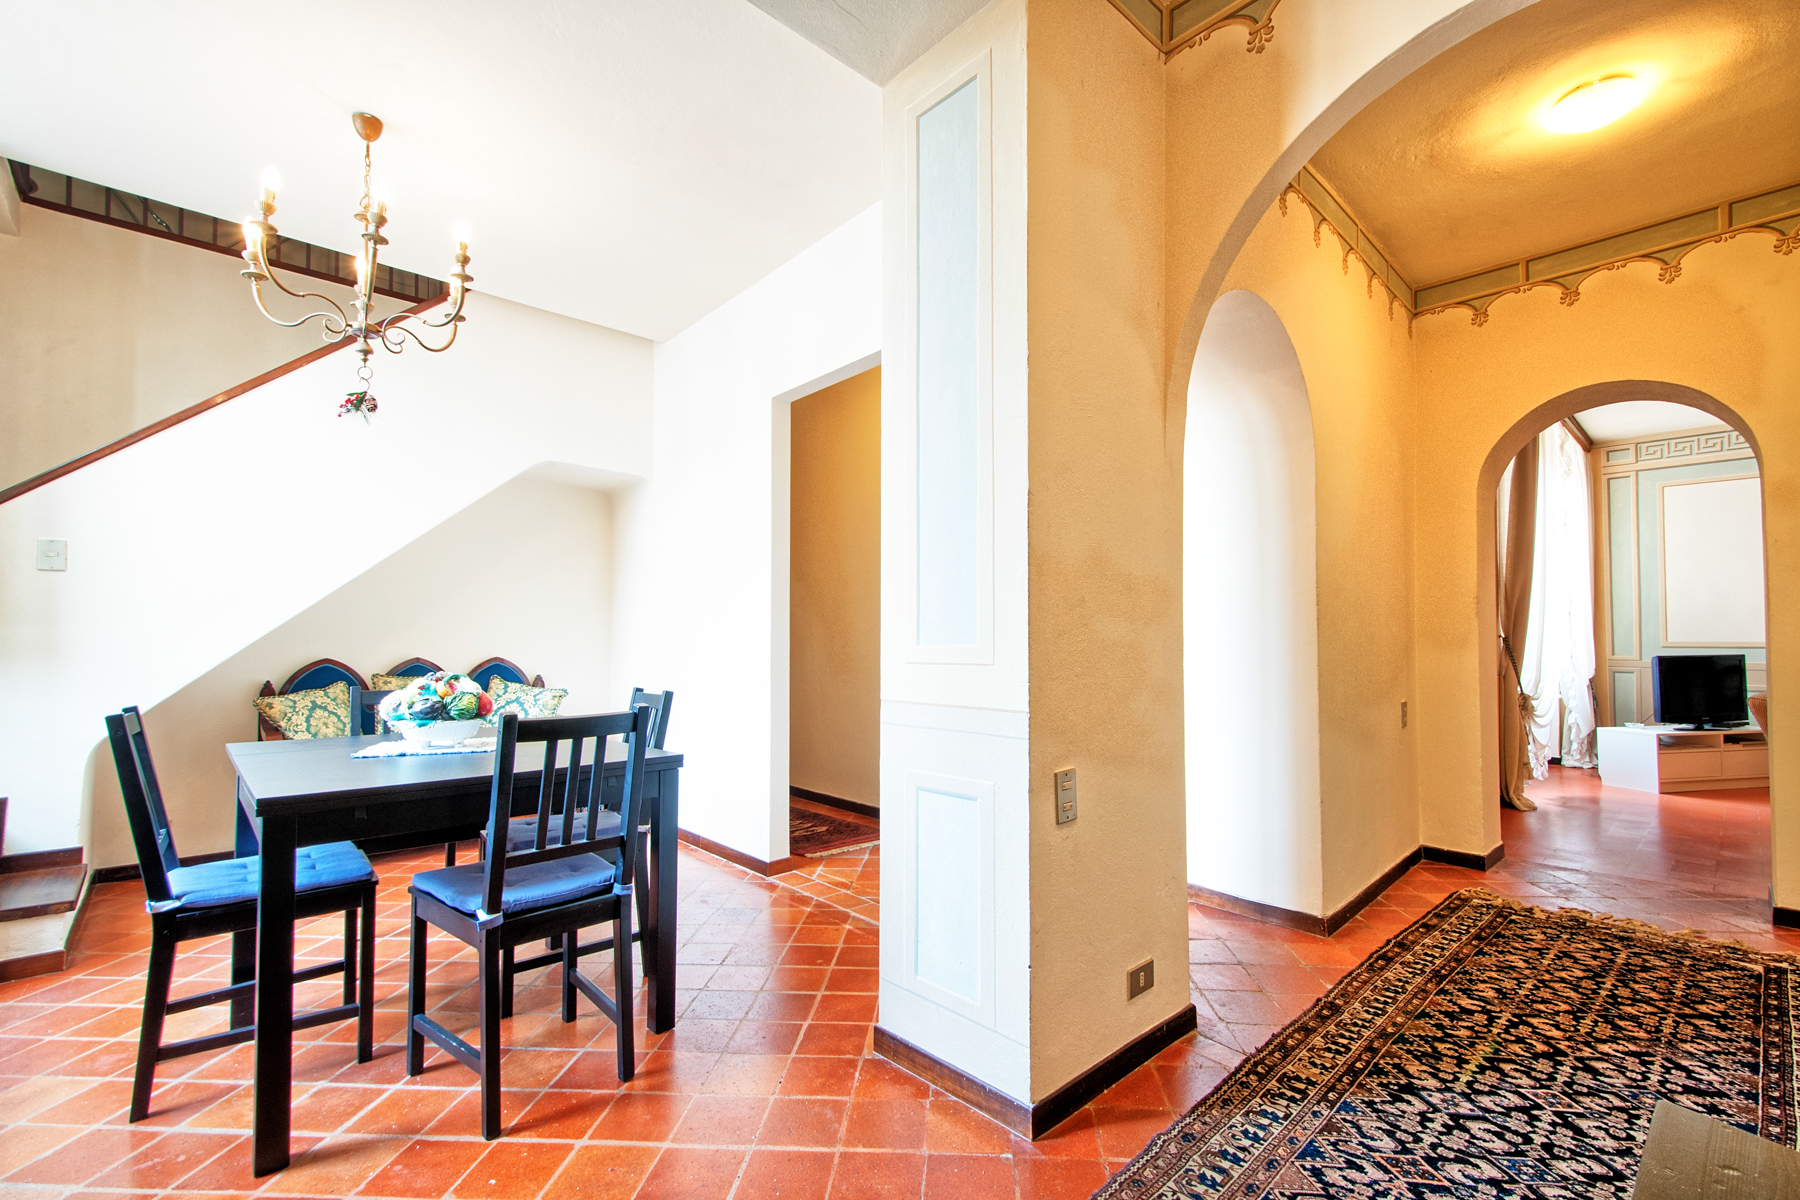 Additional photo for property listing at Elegant apartment in historical building Centro Storico, Lucca, Lucca Italien